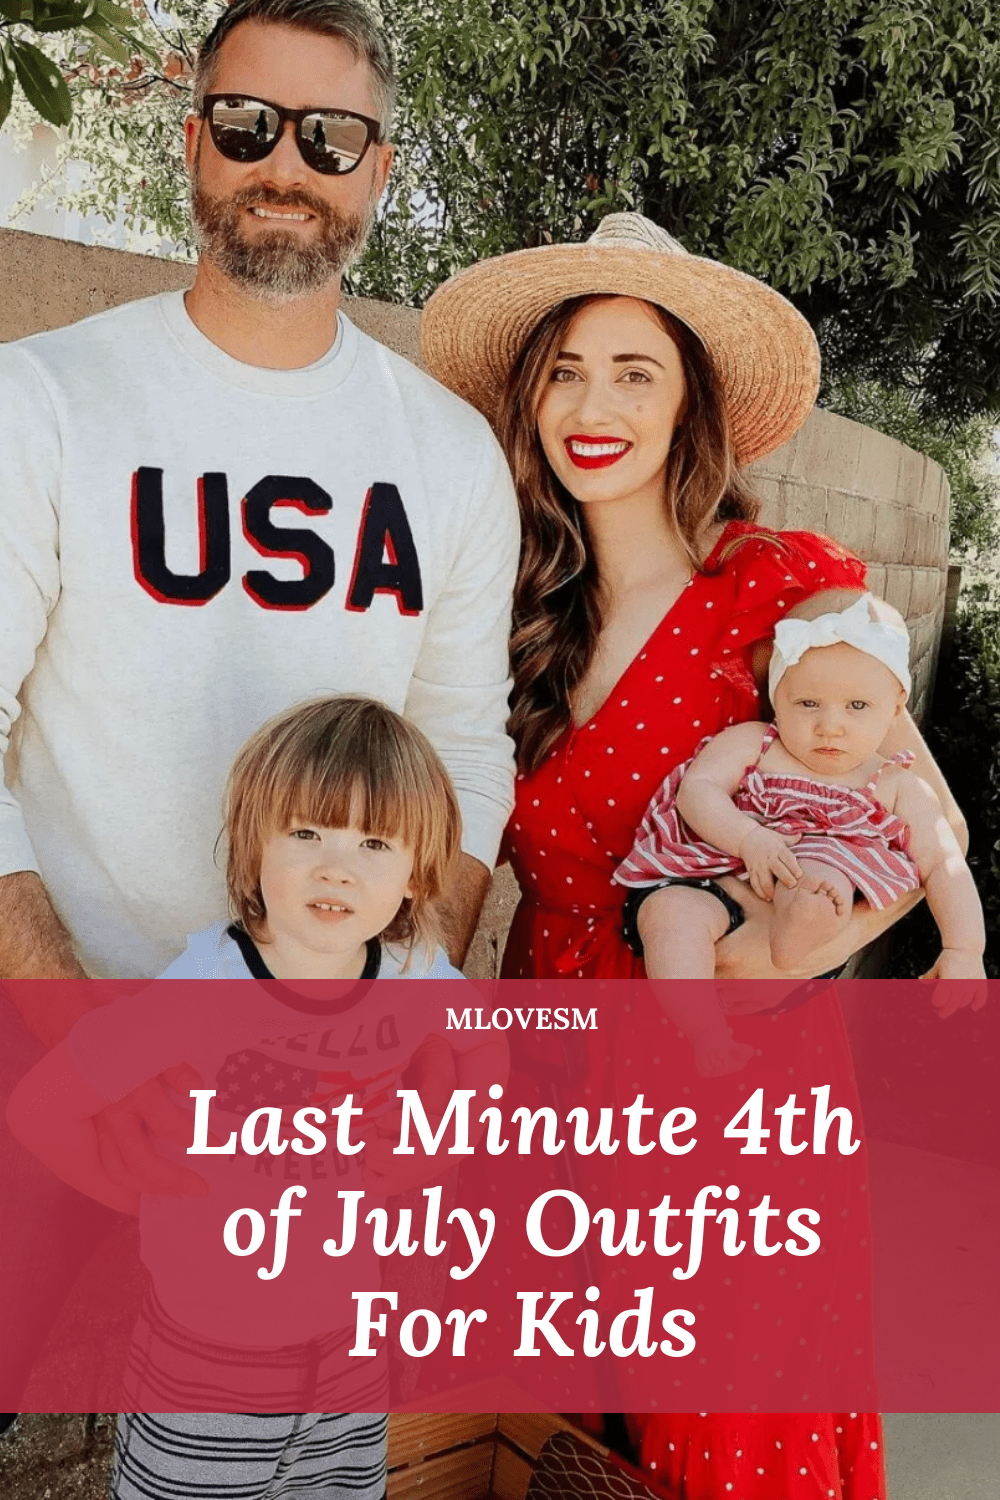 Here's last minute 4th of July outfits for kids! - M Loves M @marmar